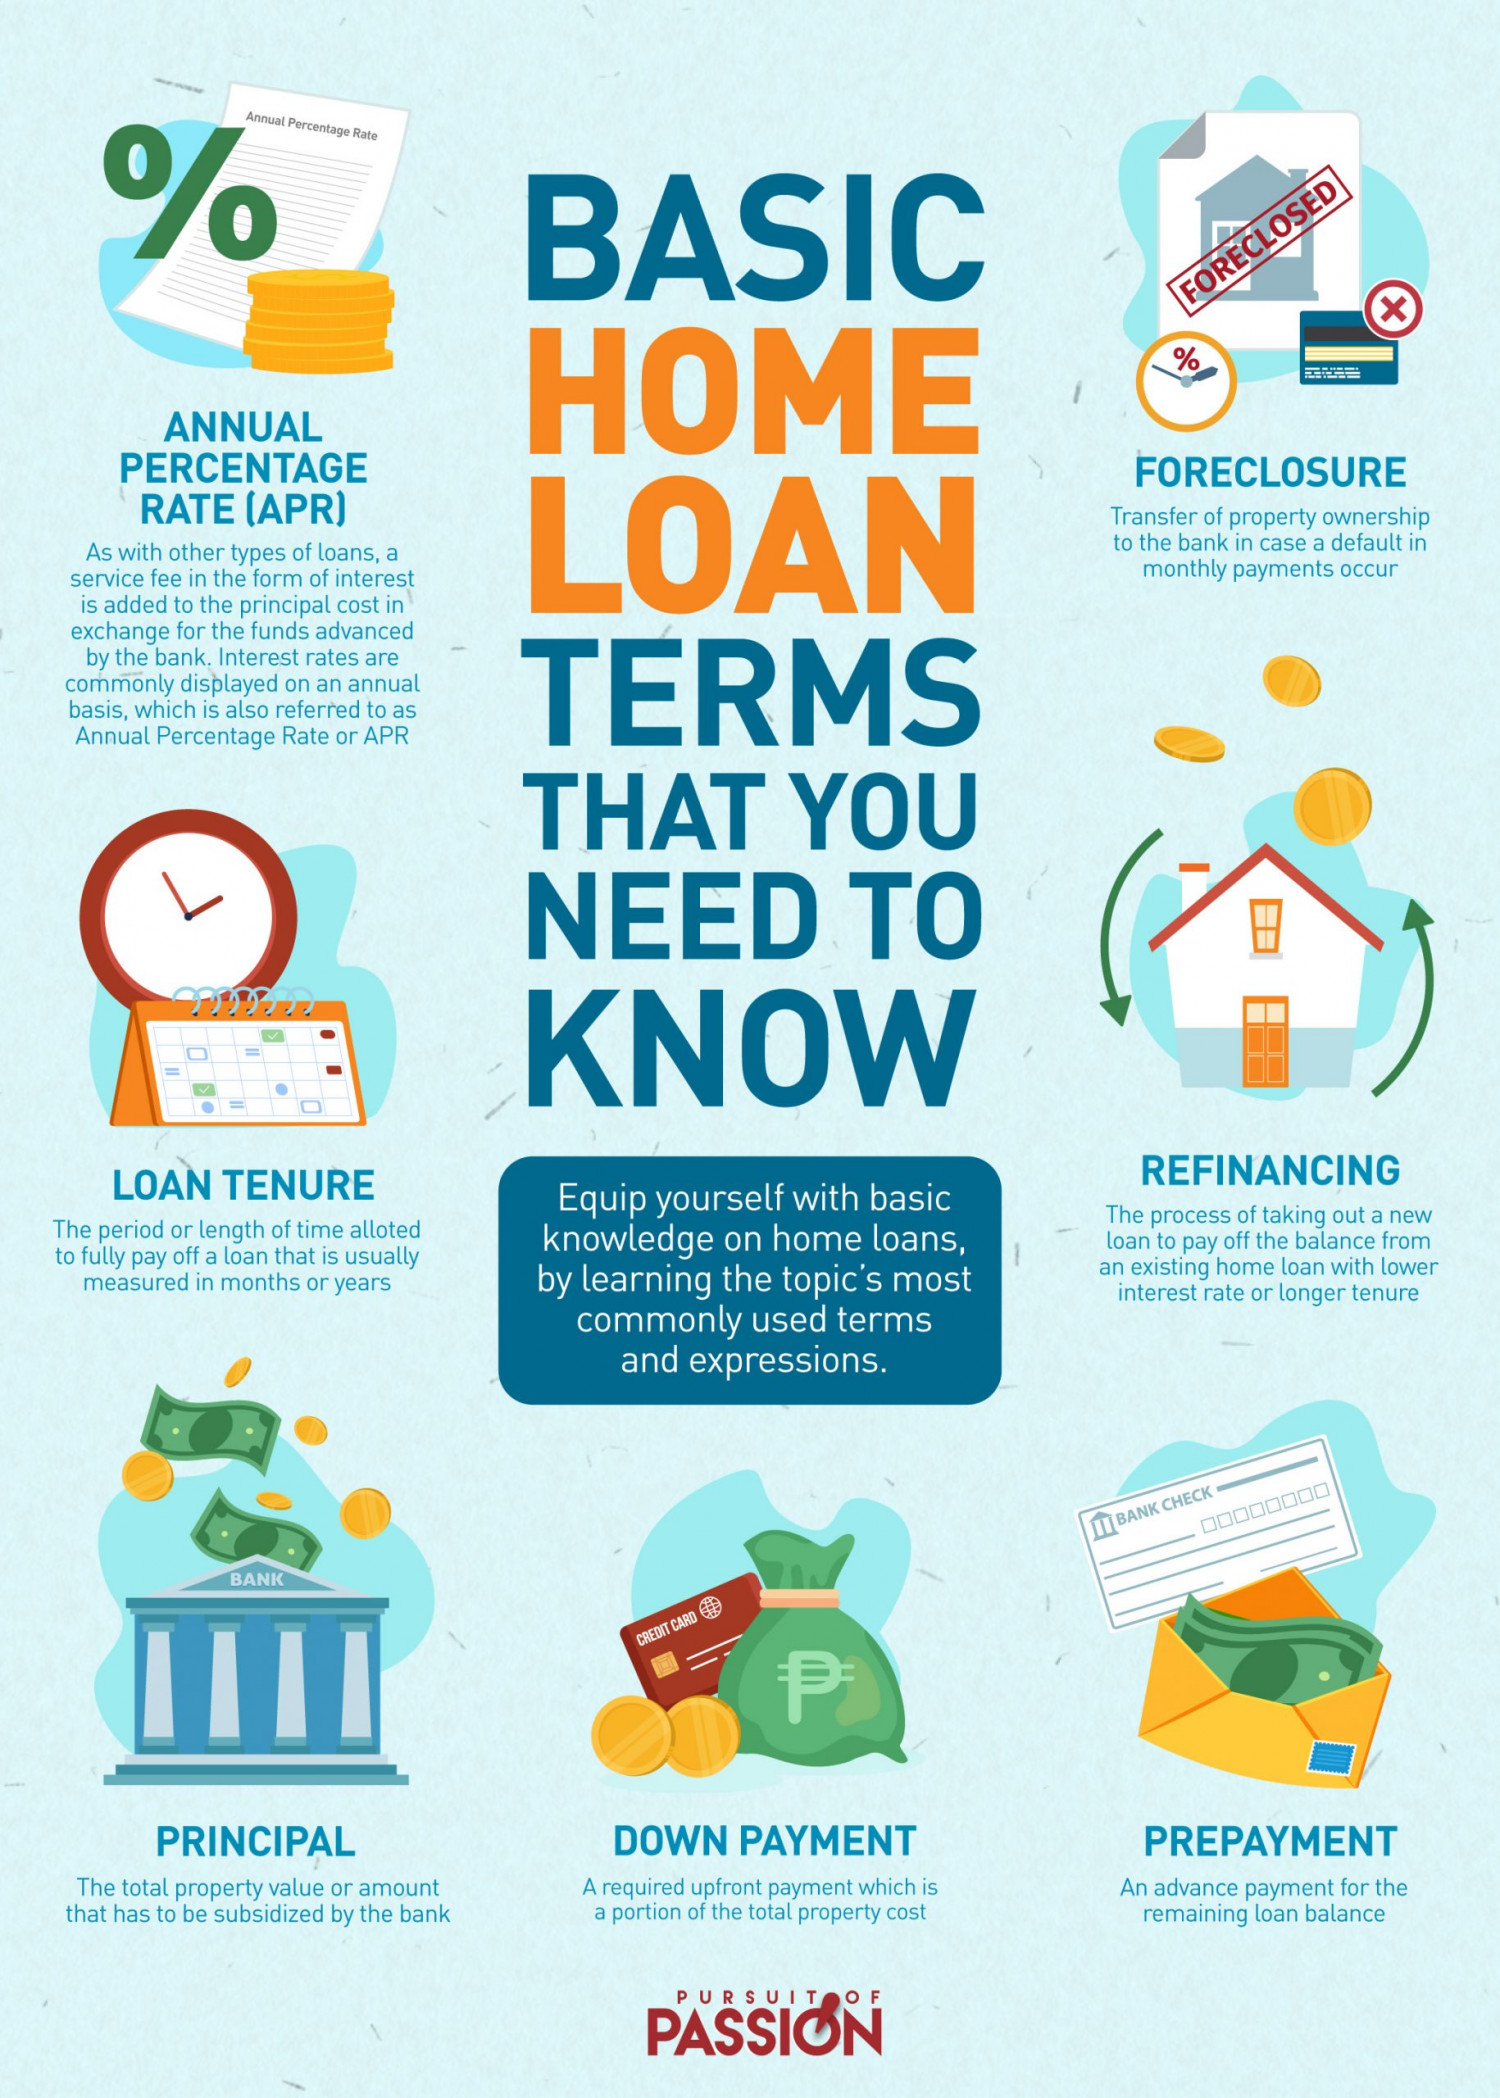 Basic Home Loan Terms That You Need To Know Infographic